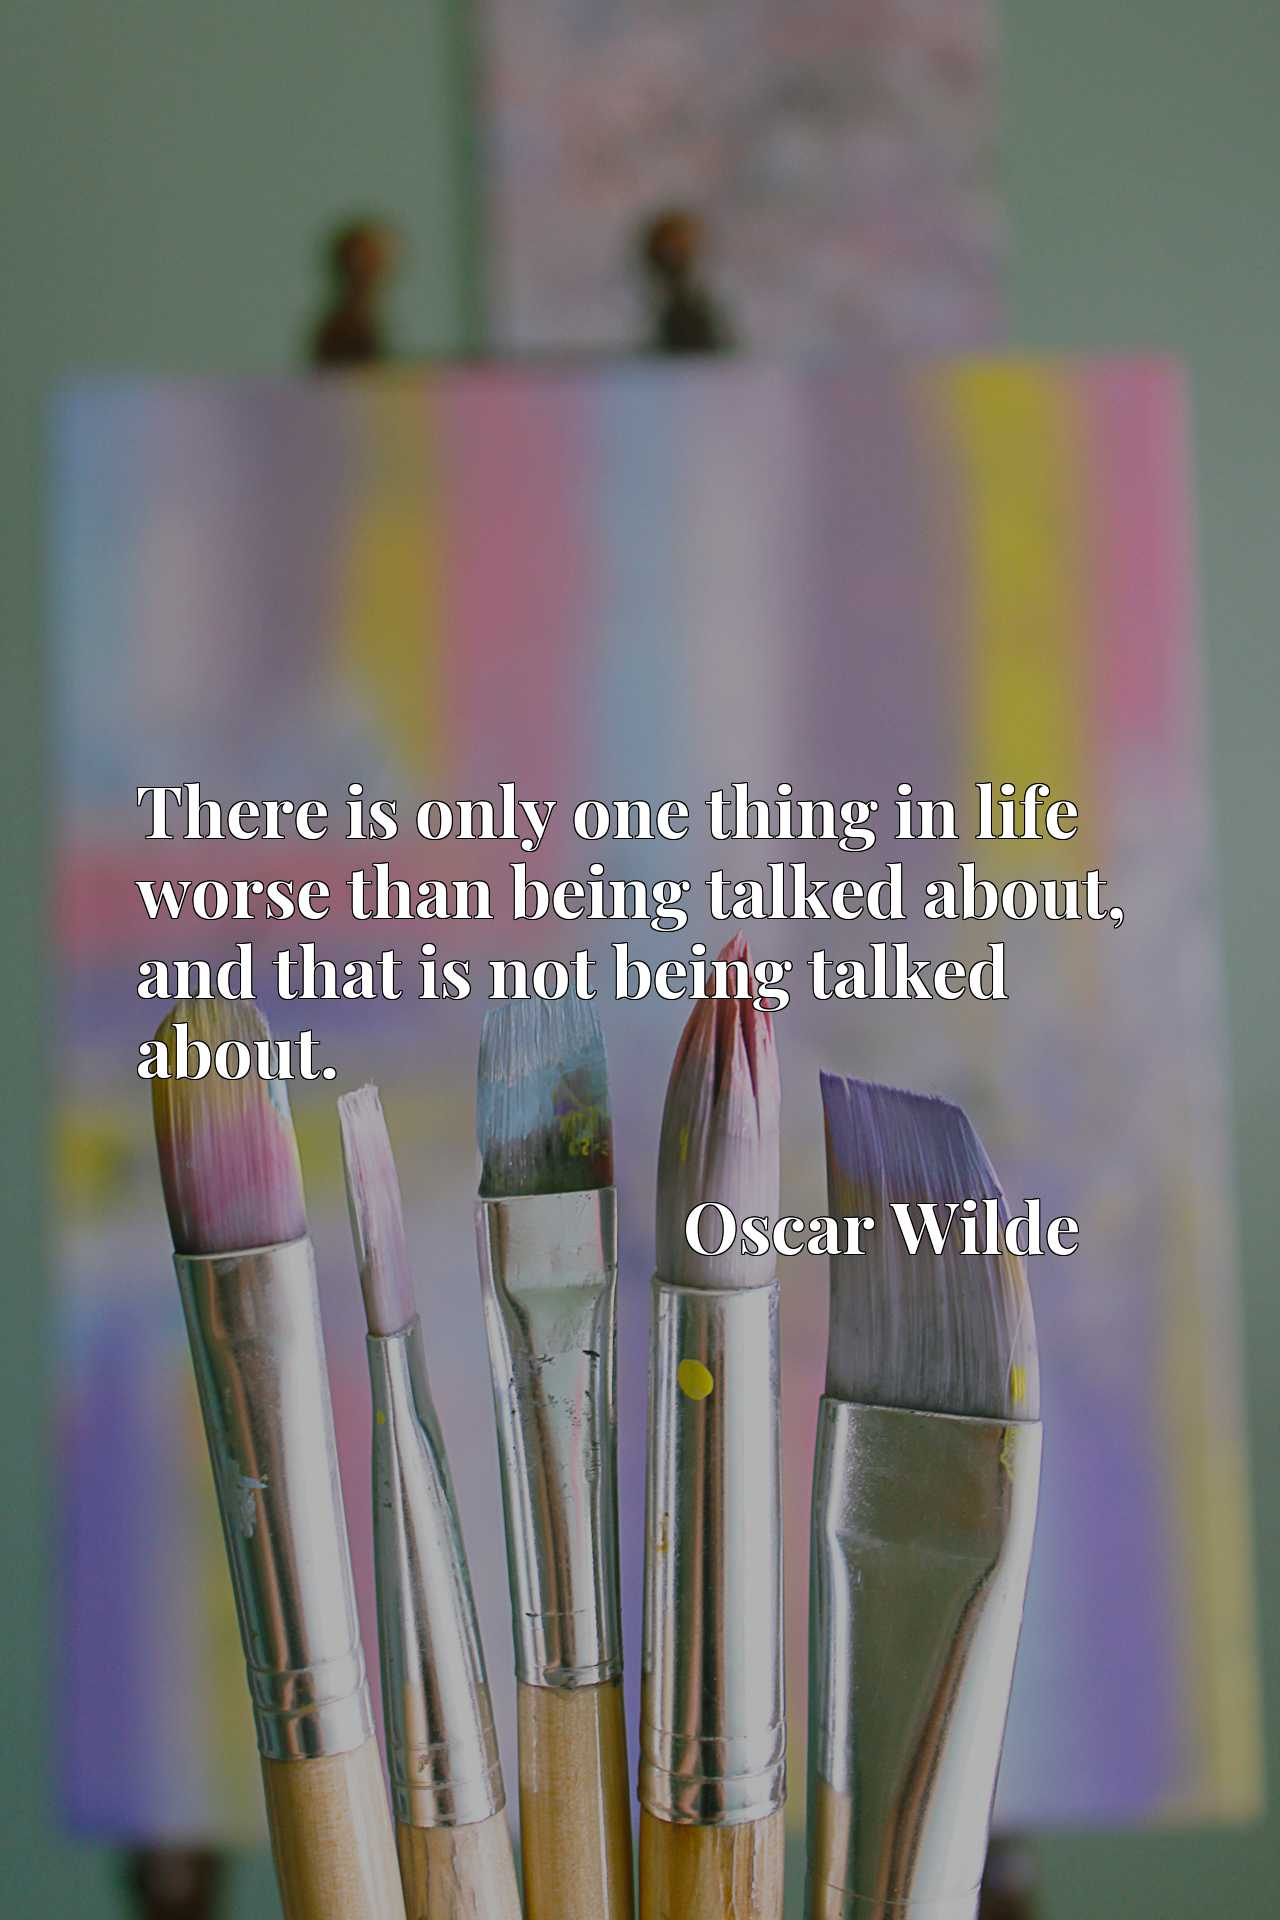 There is only one thing in life worse than being talked about, and that is not being talked about.